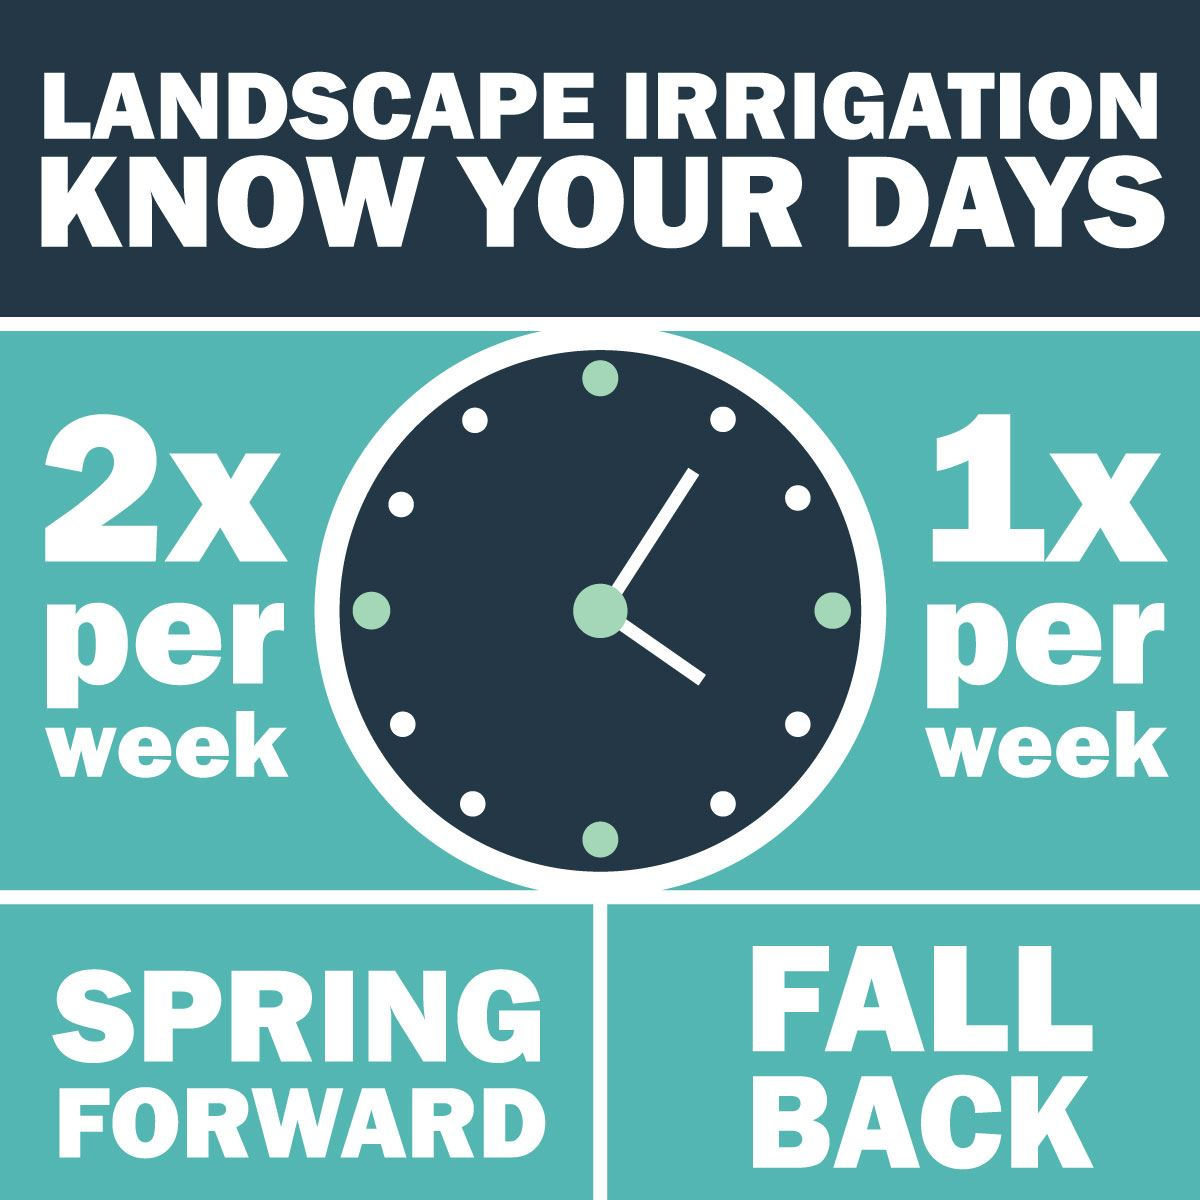 Irrigate your landscape twice per week when springing forward and once per week when falling back.